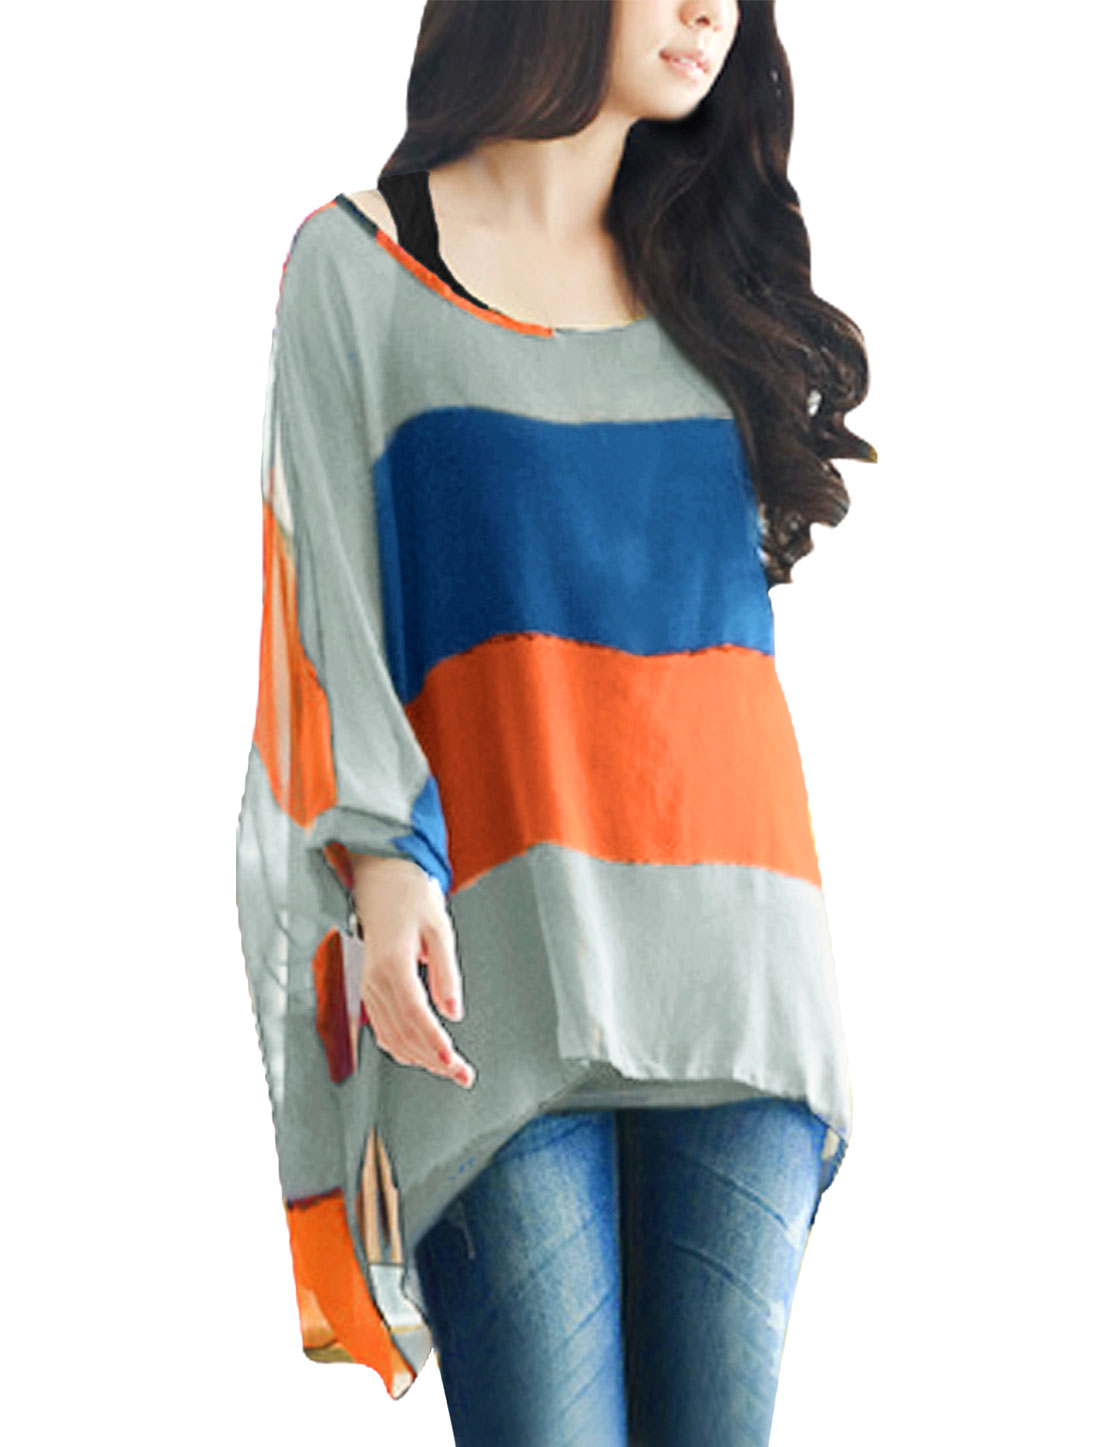 Pullover Royalblue Orange Blouse w Tank Top 2-Pieces for Lady M